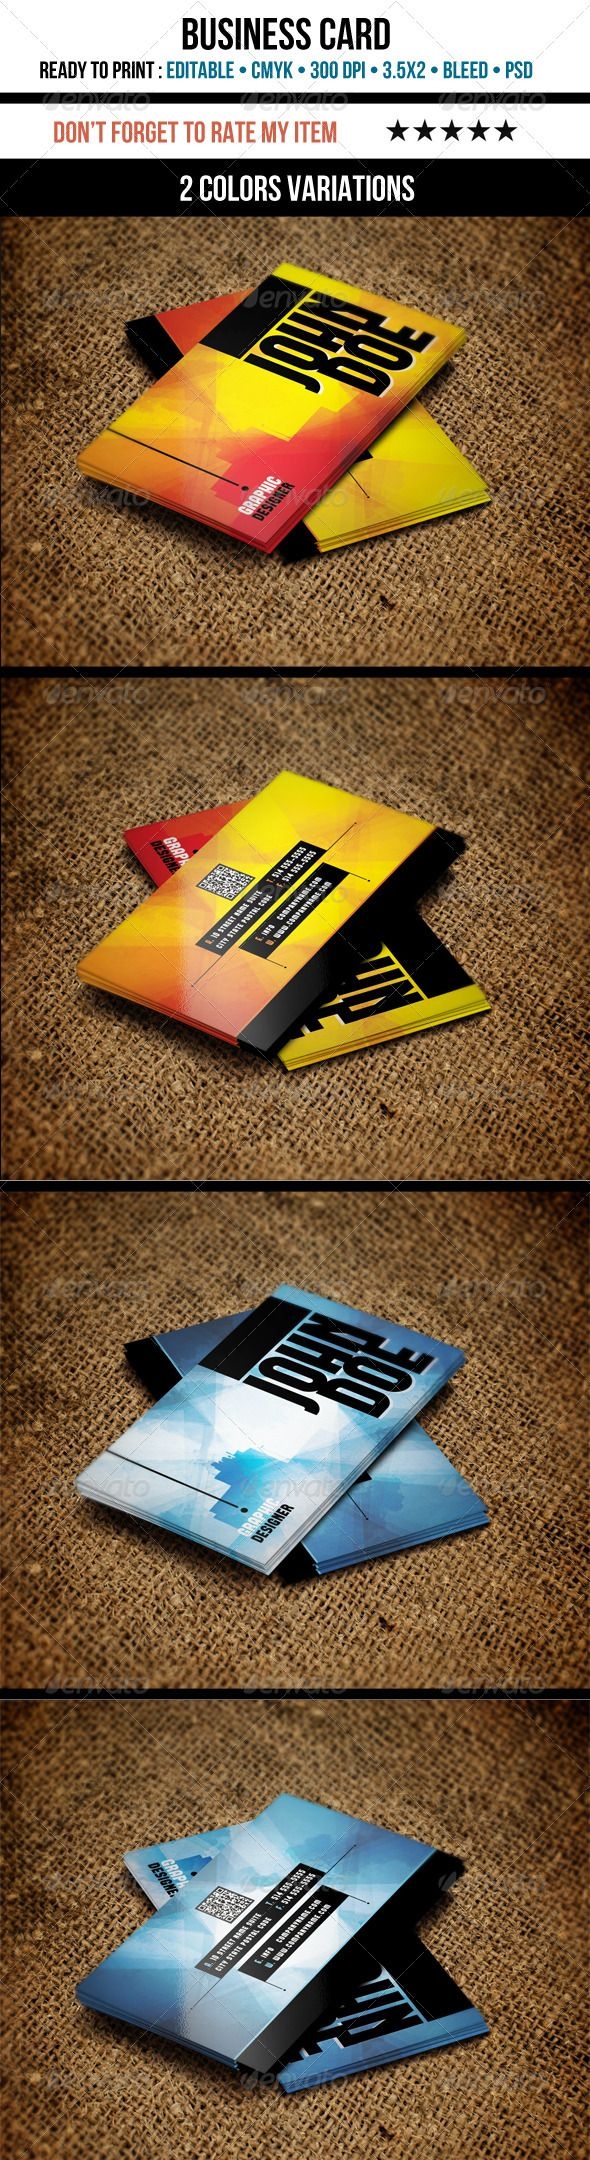 115 best busienss cards images on pinterest business card design grunge business cards reheart Choice Image